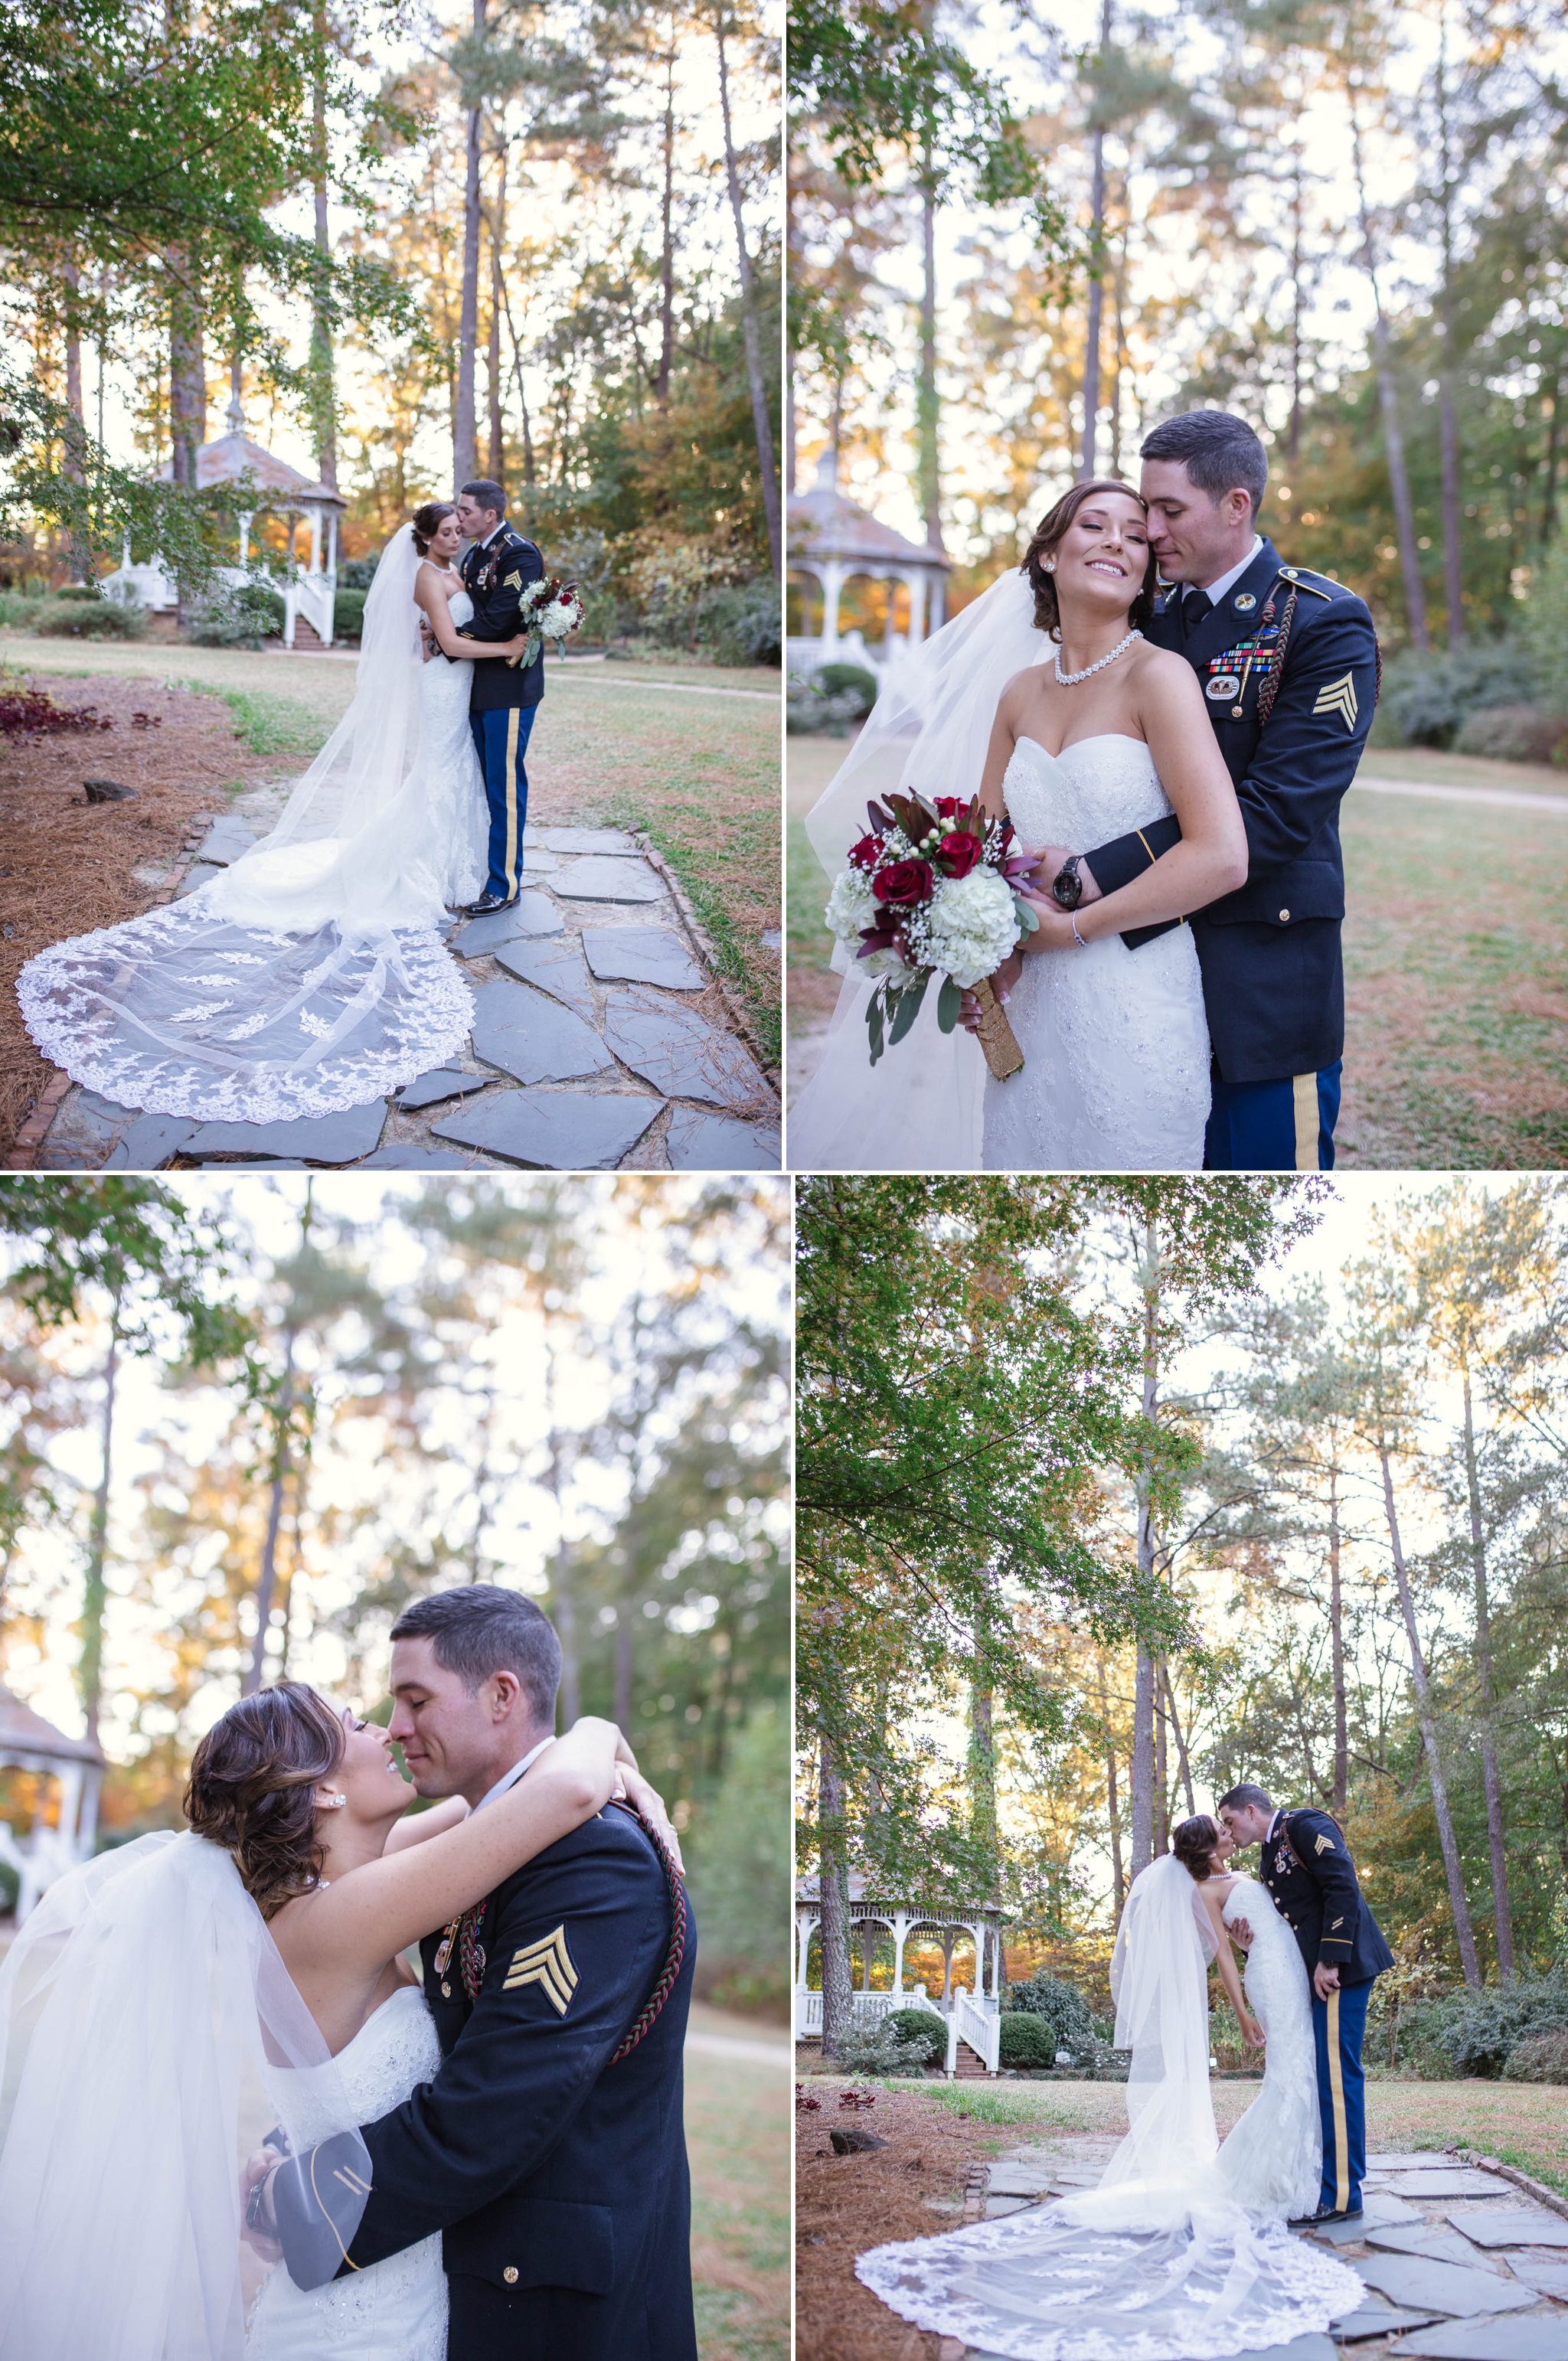 Wedding Photography at the Cape Fear Botanical Garden in Fayetteville North Carolina